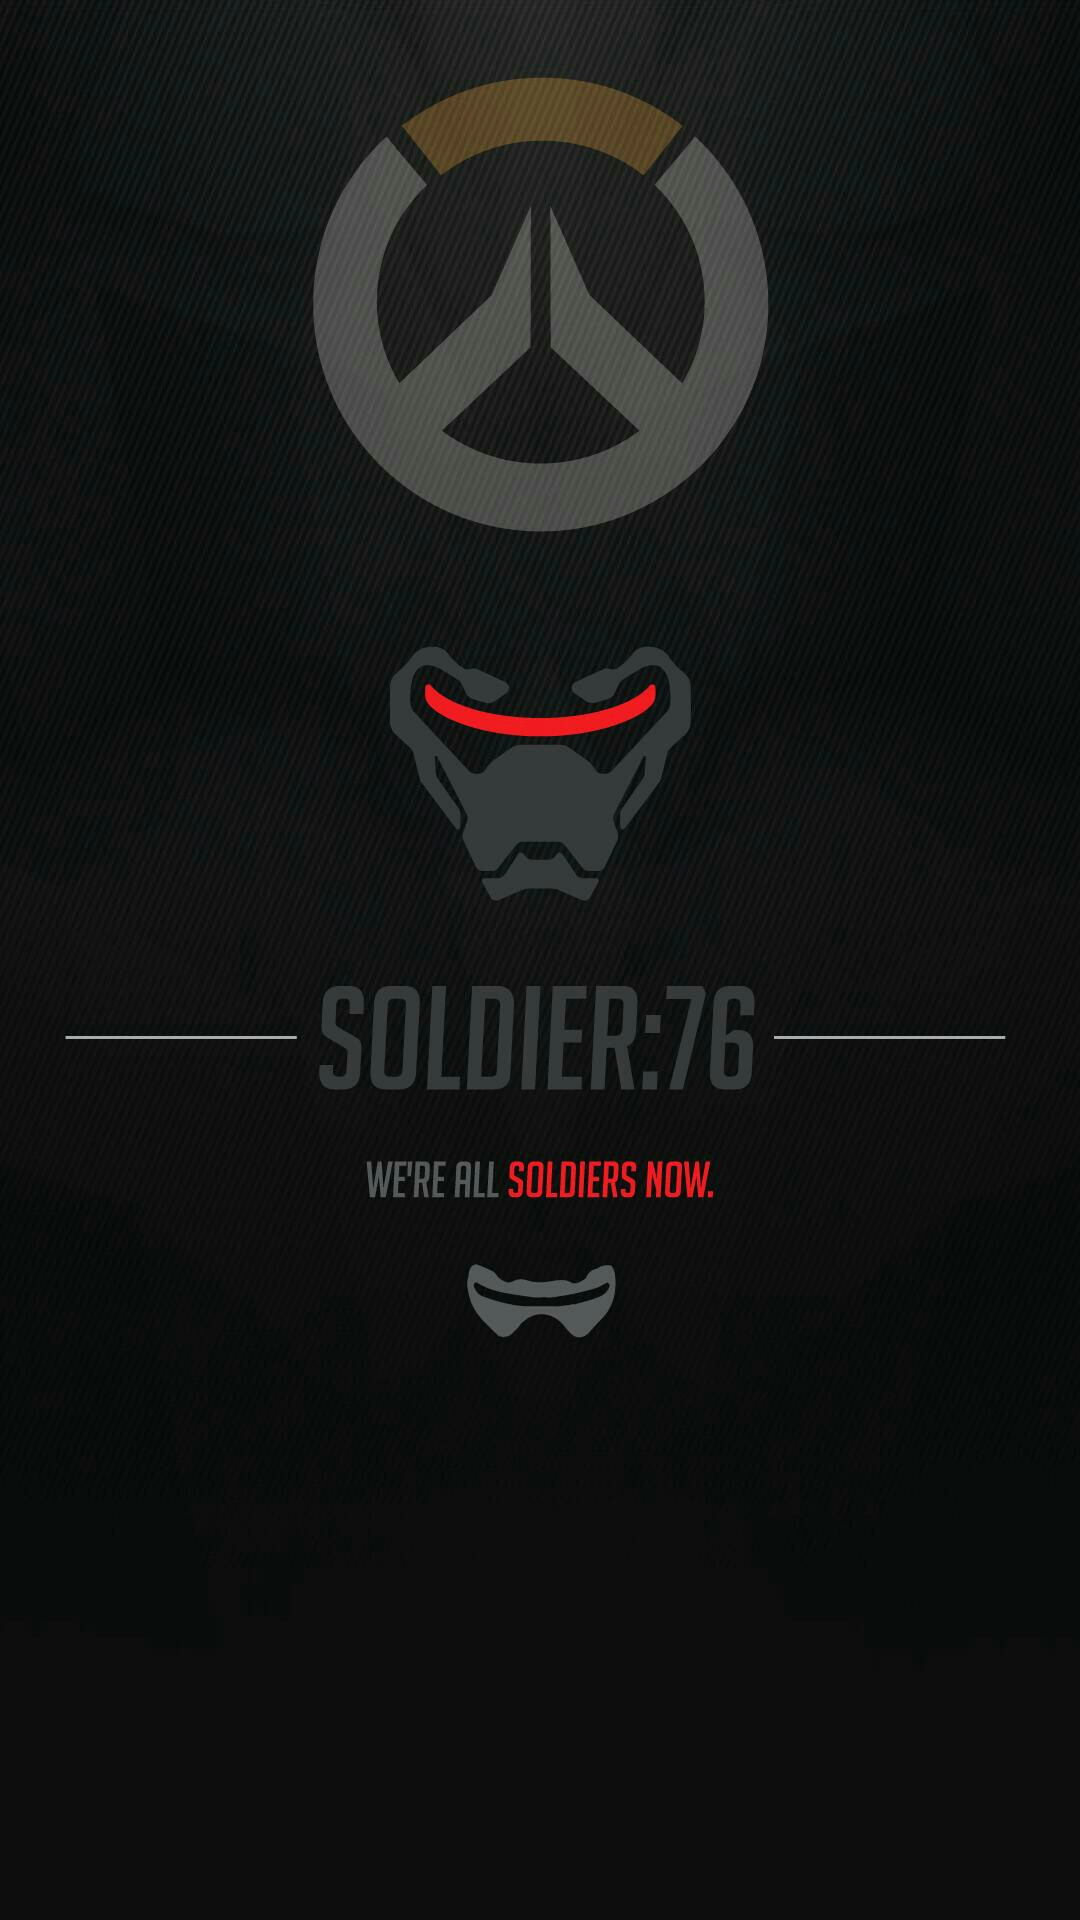 Res: 1080x1920, Video Game Live Wallpaper Unique sol R 76 Everything Overwatch Pinterest